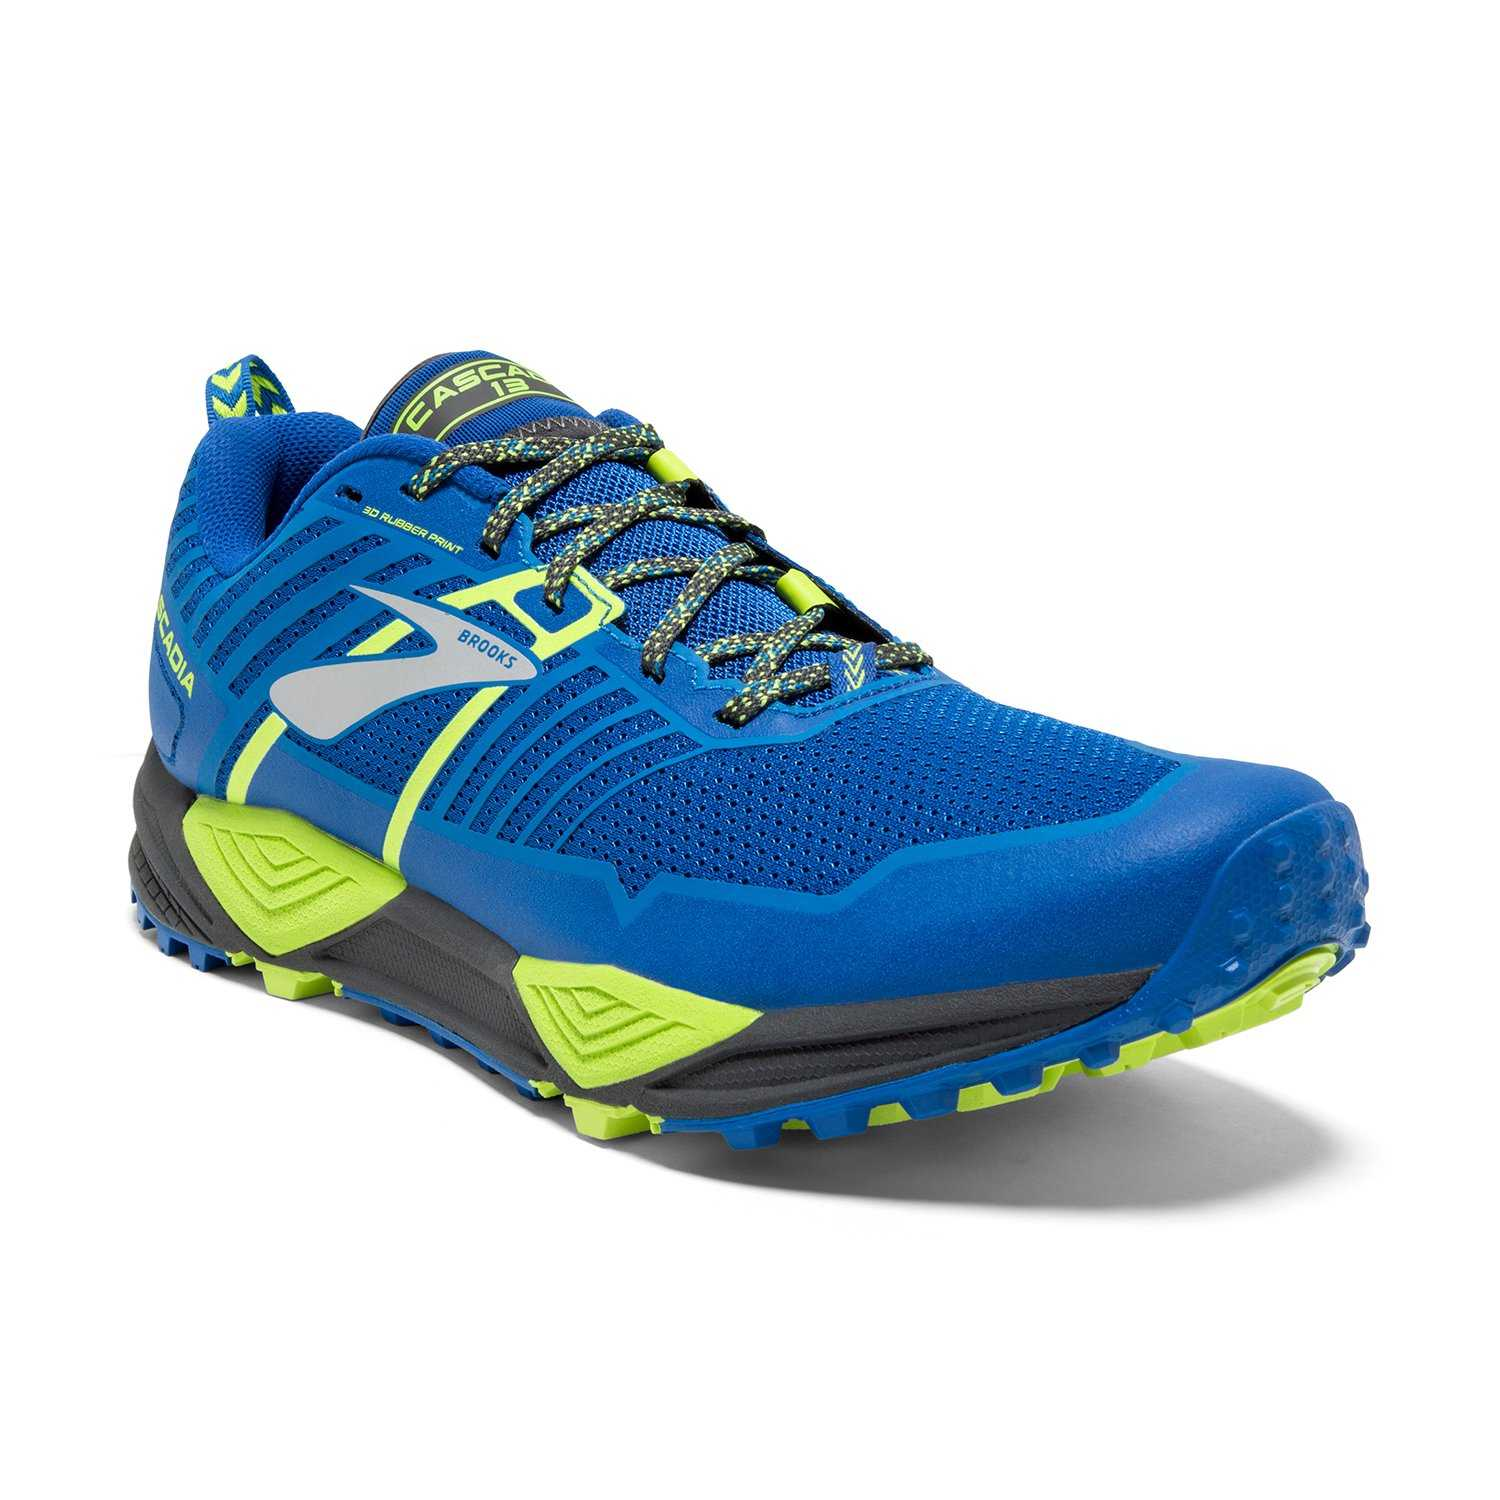 Chaussures Running Cascadia 13 - Blue/Black/Lime